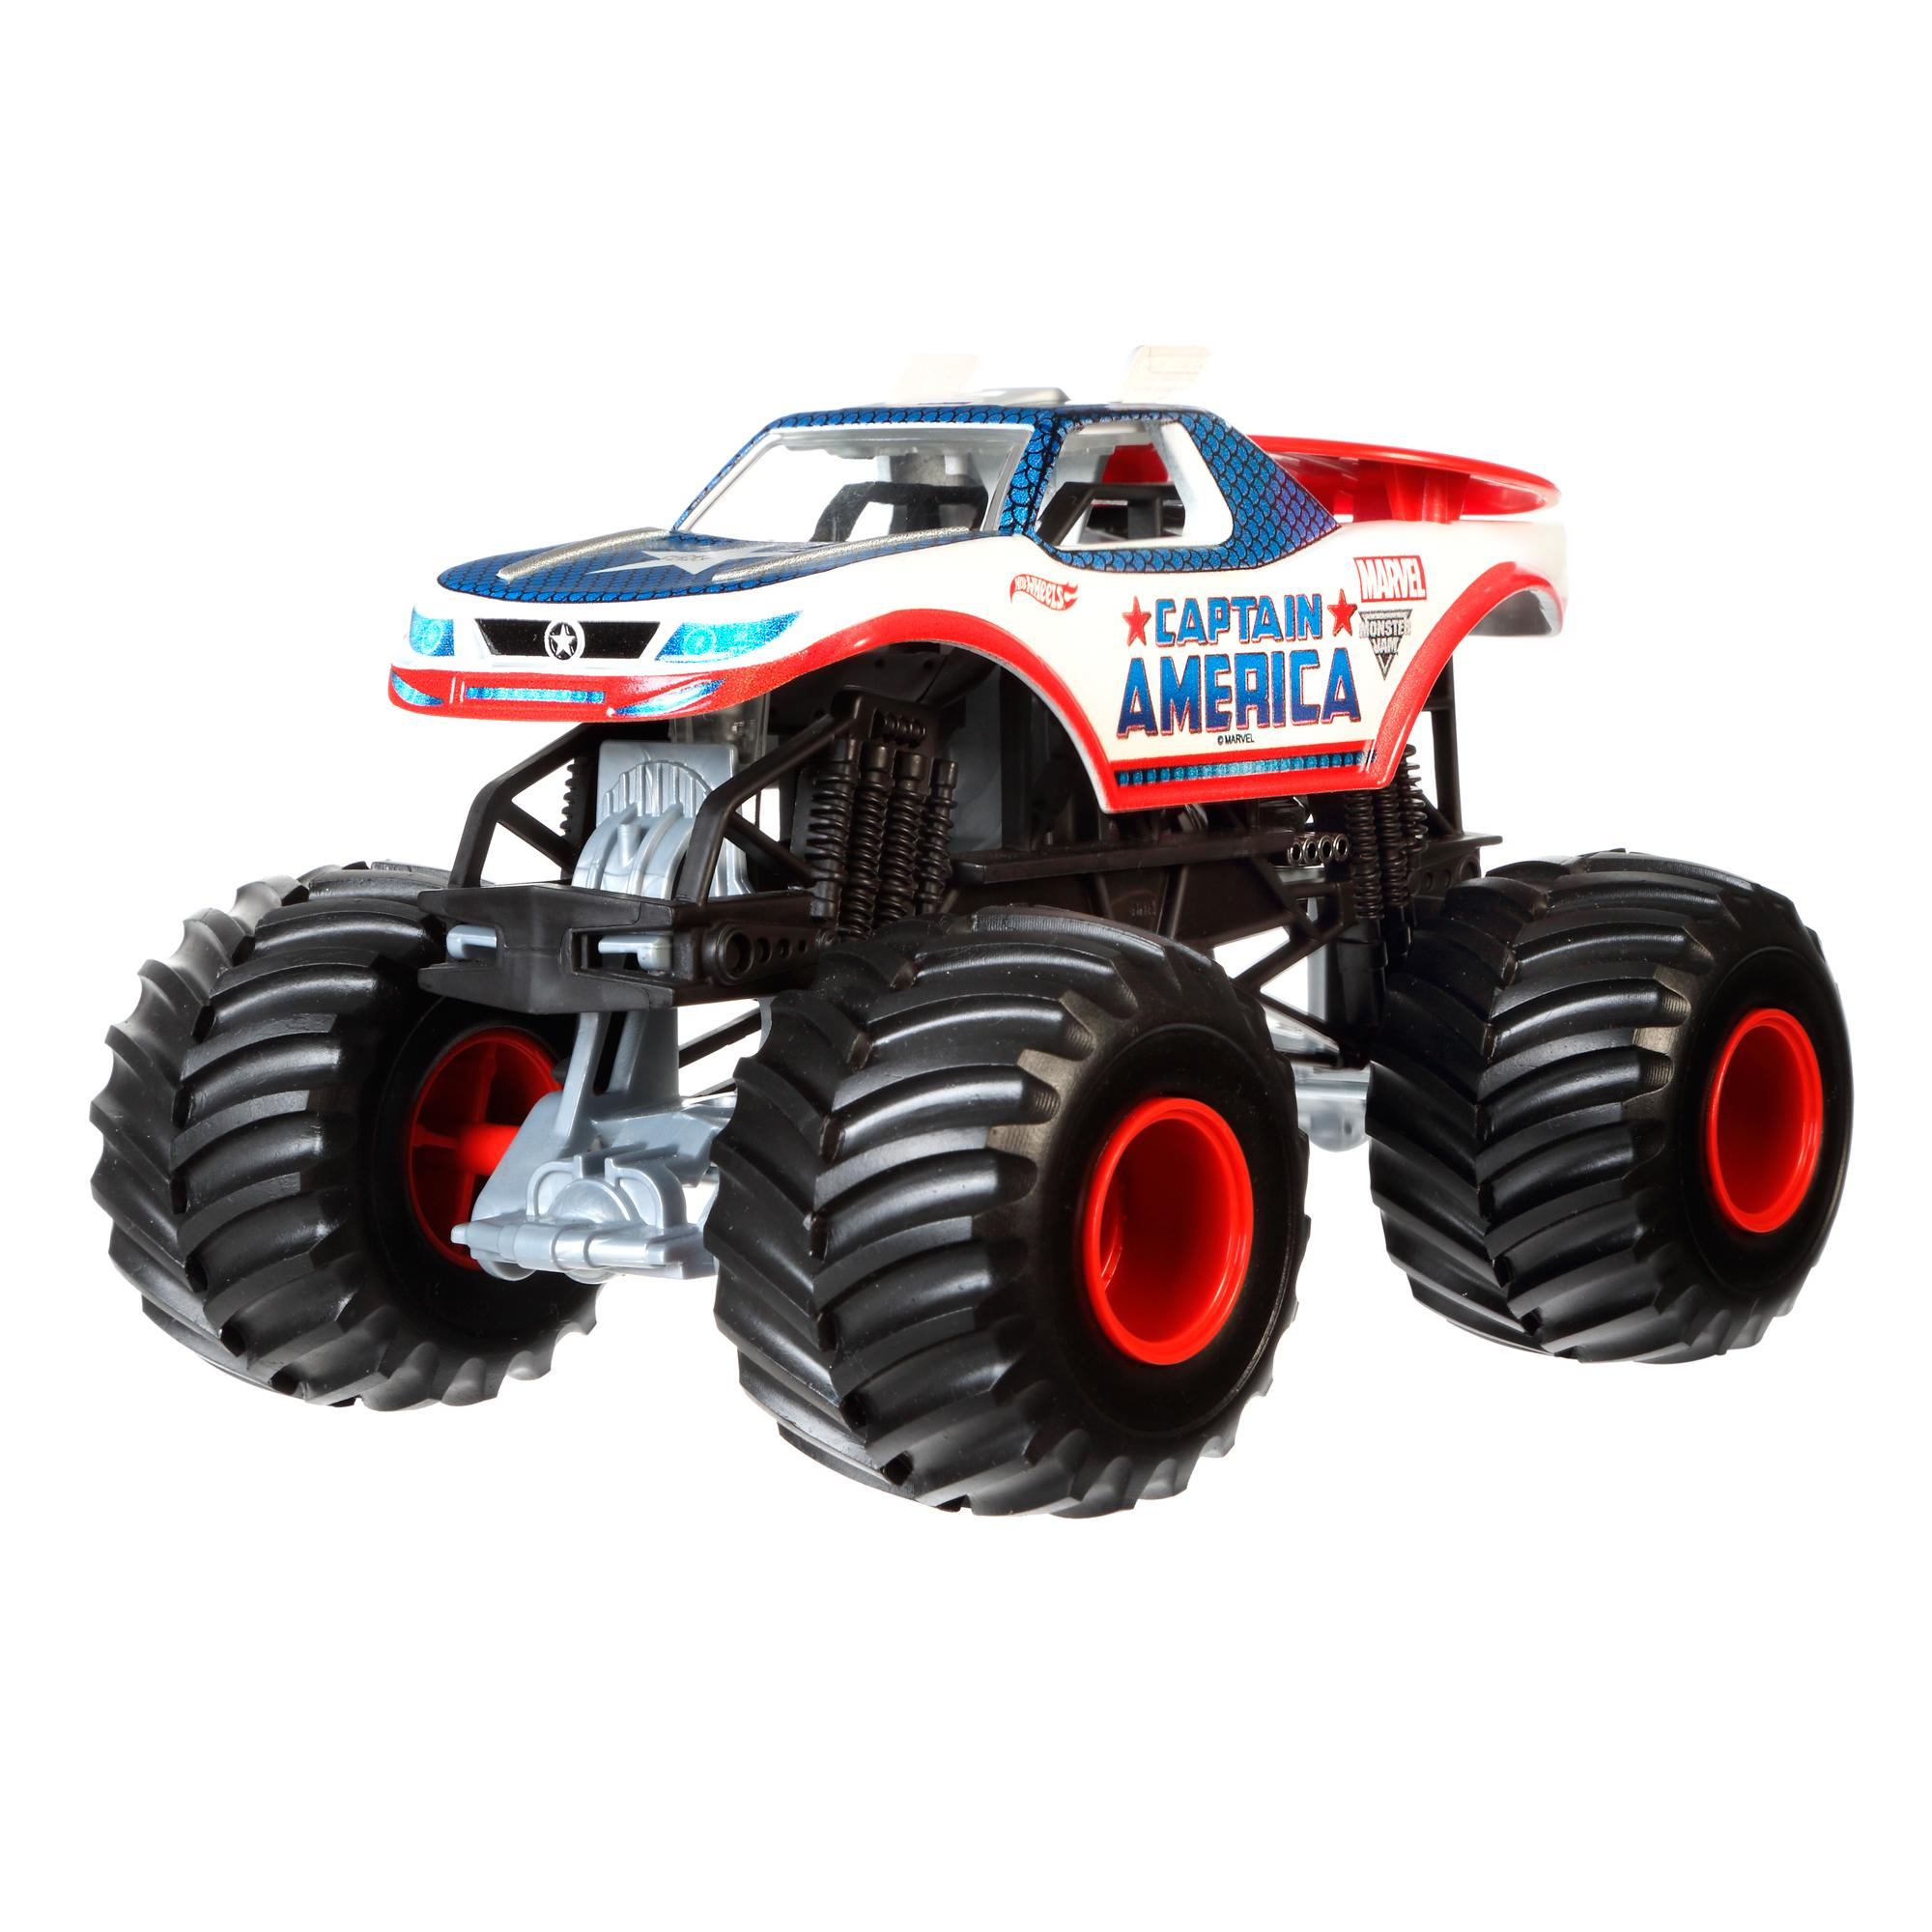 Hot Wheels Monster Jam 1:24 Captain America Die-Cast Vehicle